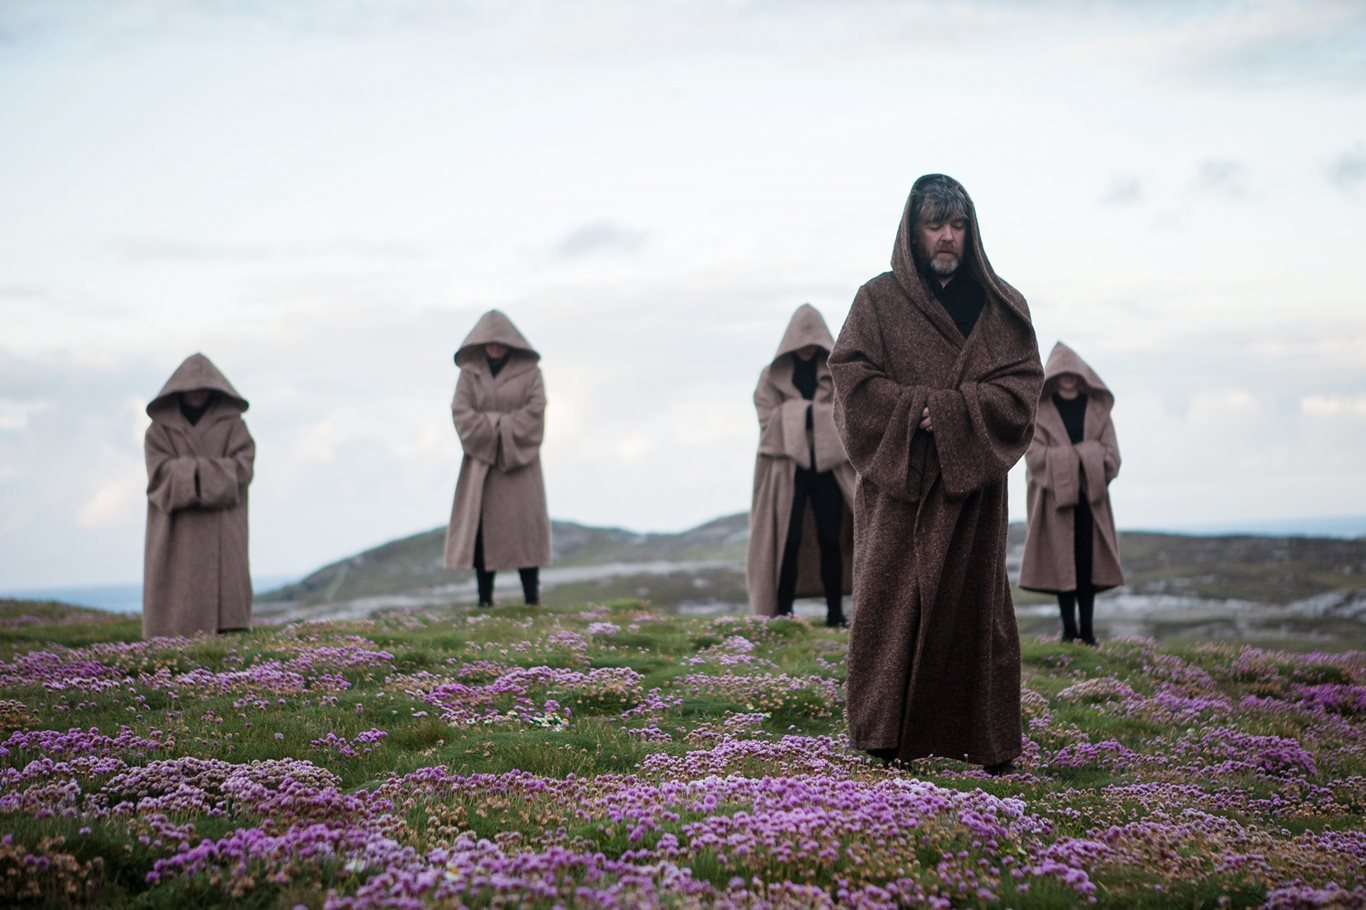 Gathering of the Force, Malin Head. Photo Credit: Martha McCulloch